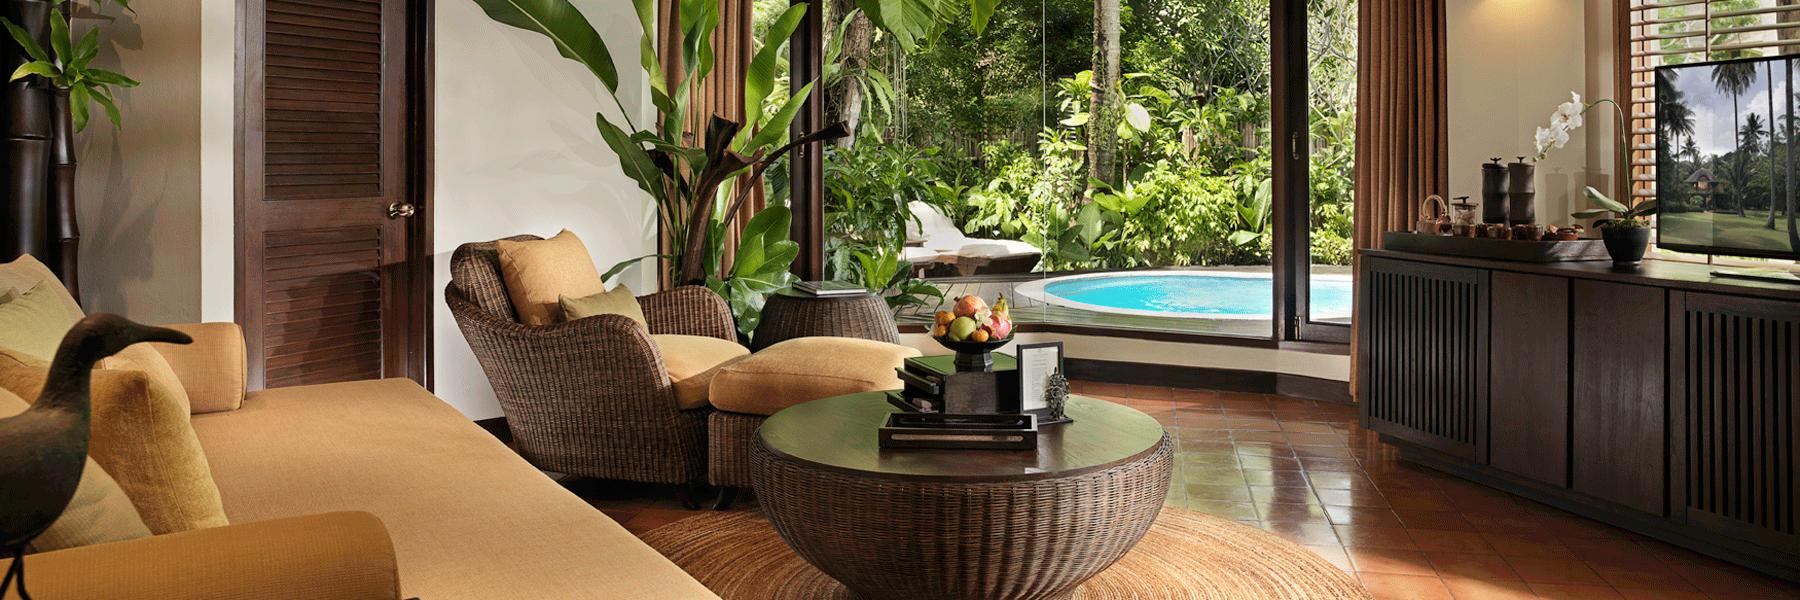 Relaxed Thailand & Malaysia in Style